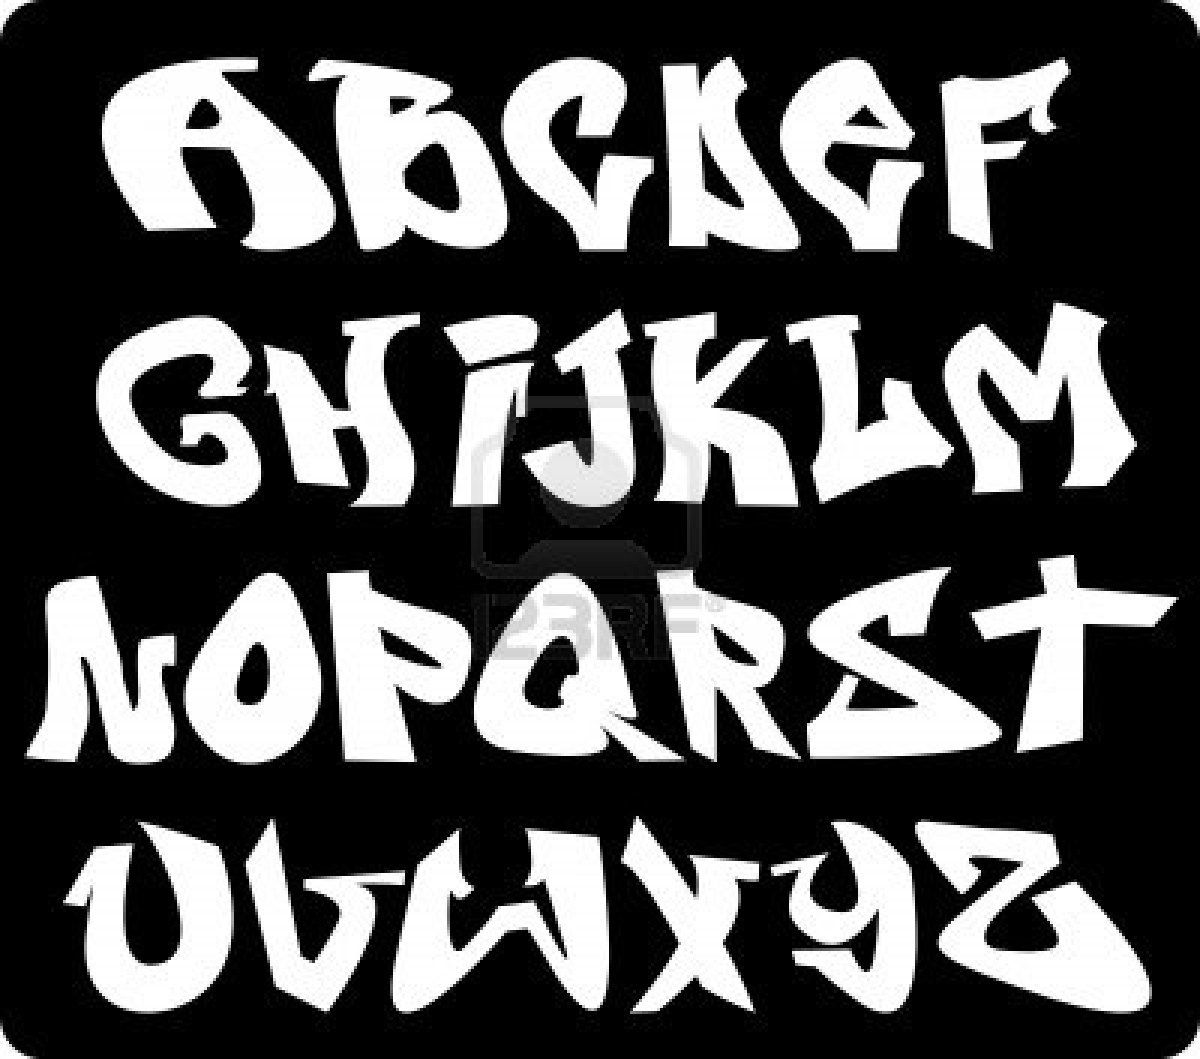 Best 25 old english font ideas on pinterest english fonts old english alphabet and old english - Graffiti abc letters ...